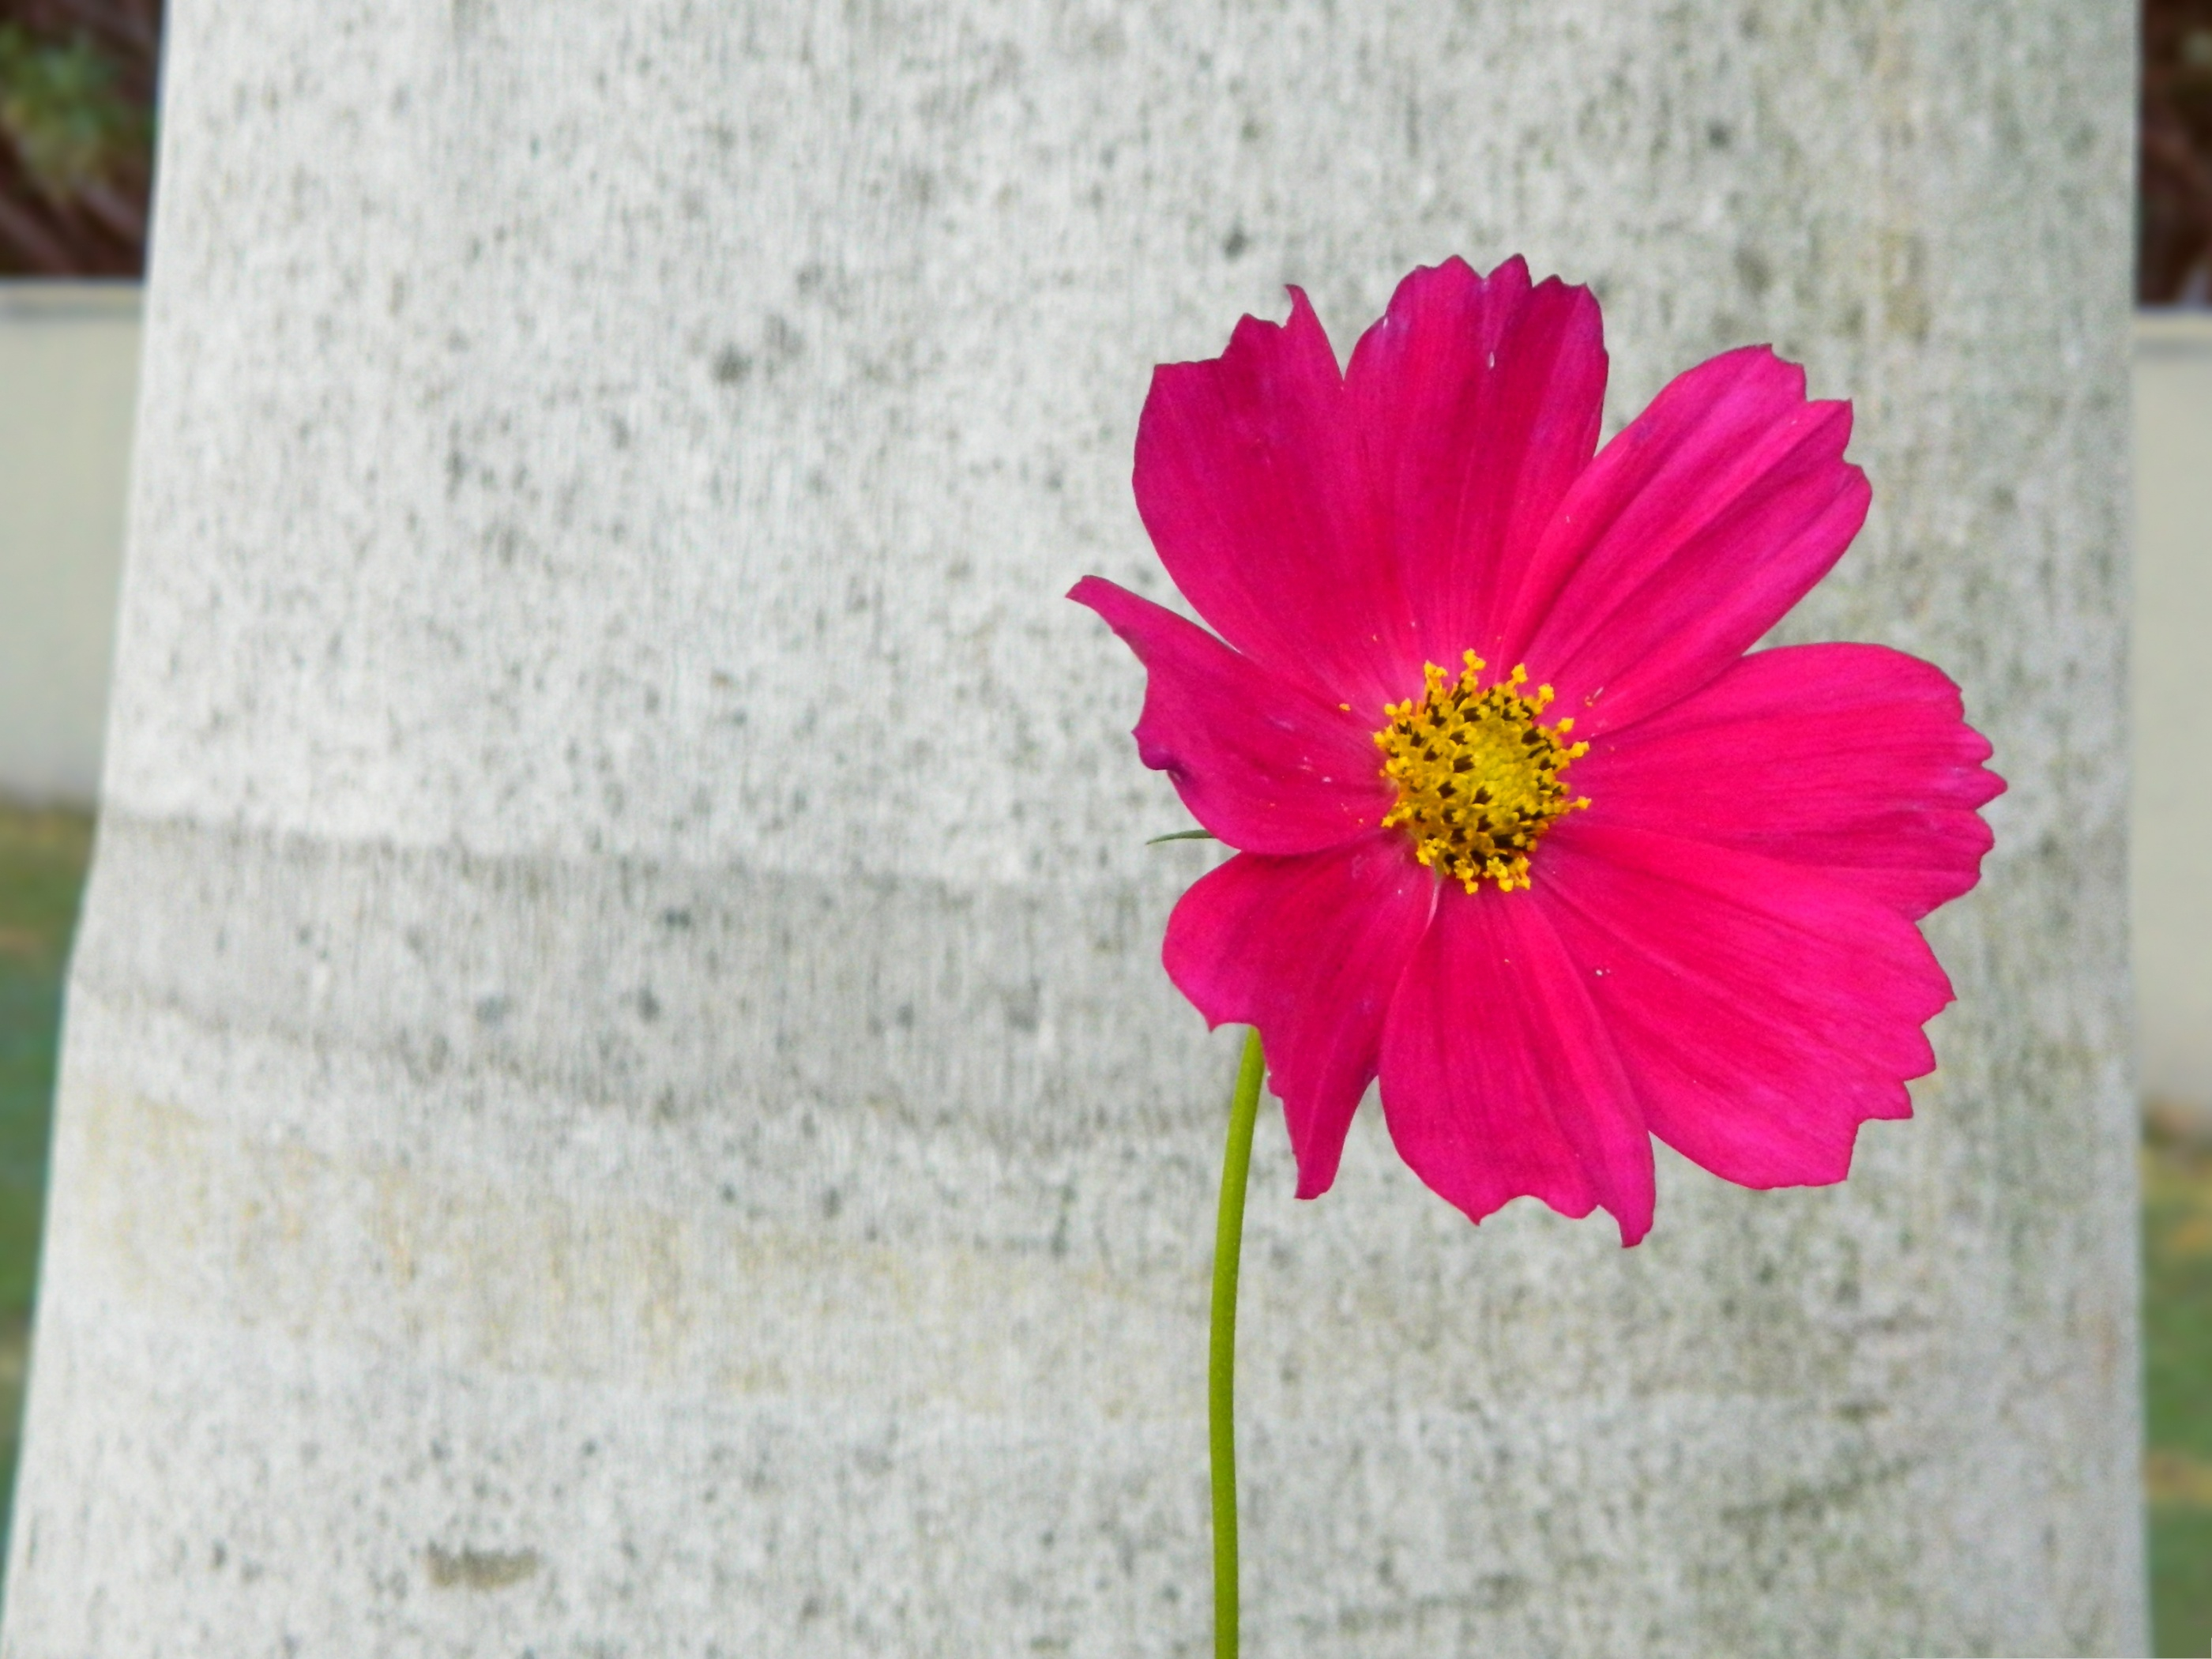 click to free download the wallpaper--Pink Flowers Picture, Small Flower Blooming, Put Against White Paper Background 2800X2100 free wallpaper download